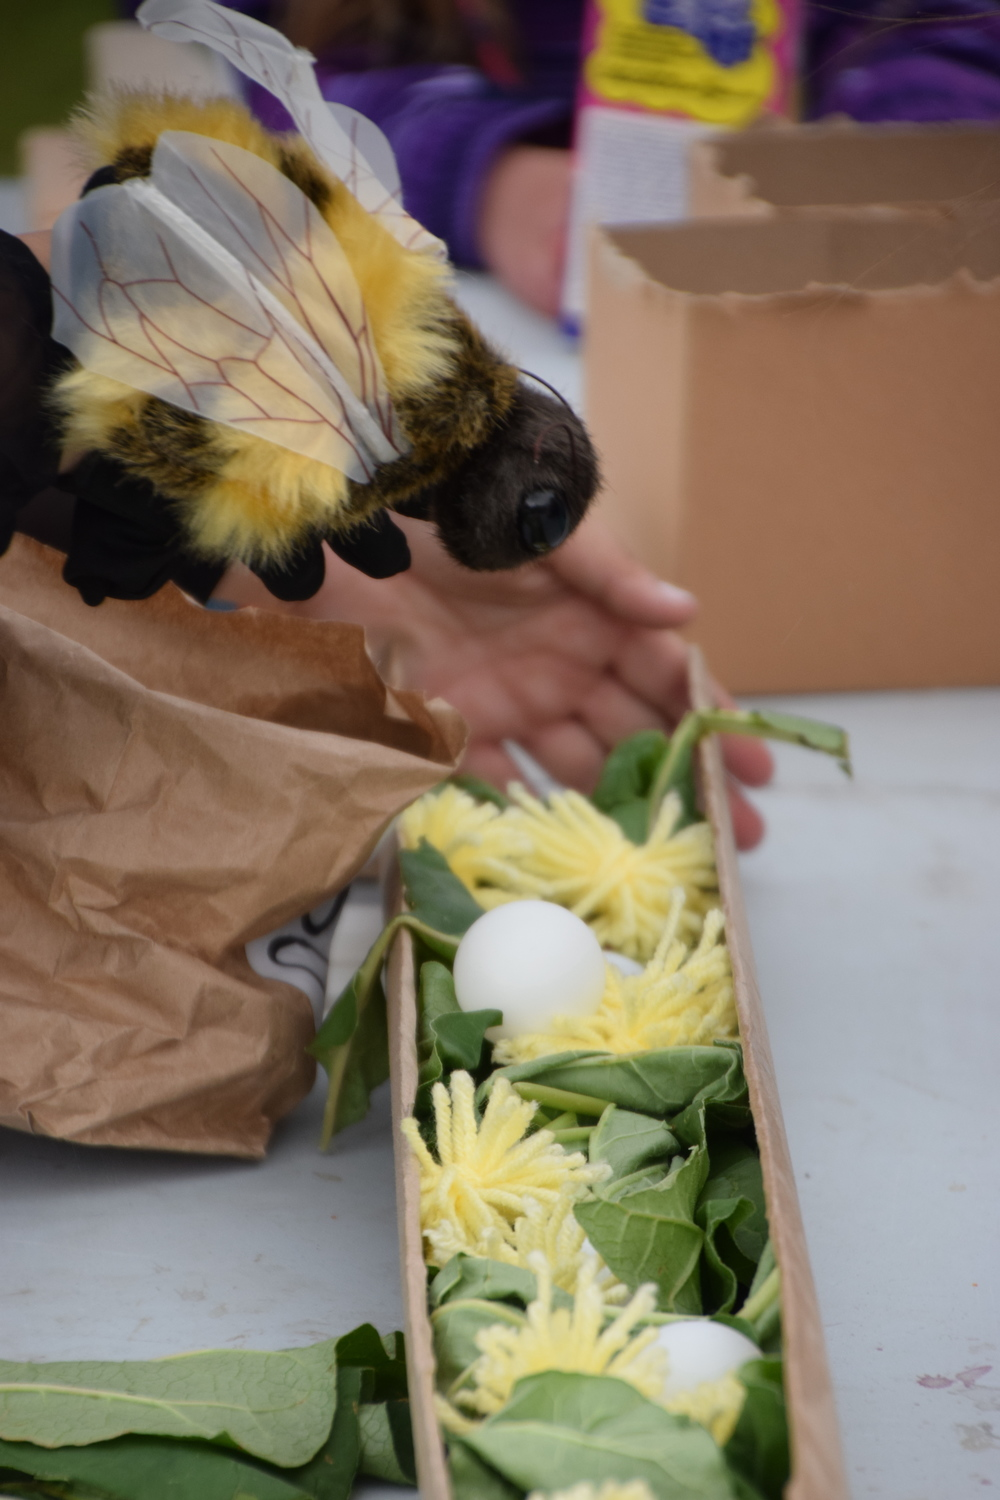 and used our bee puppet to show how they lay their eggs in tunnels with pollen and nectar.